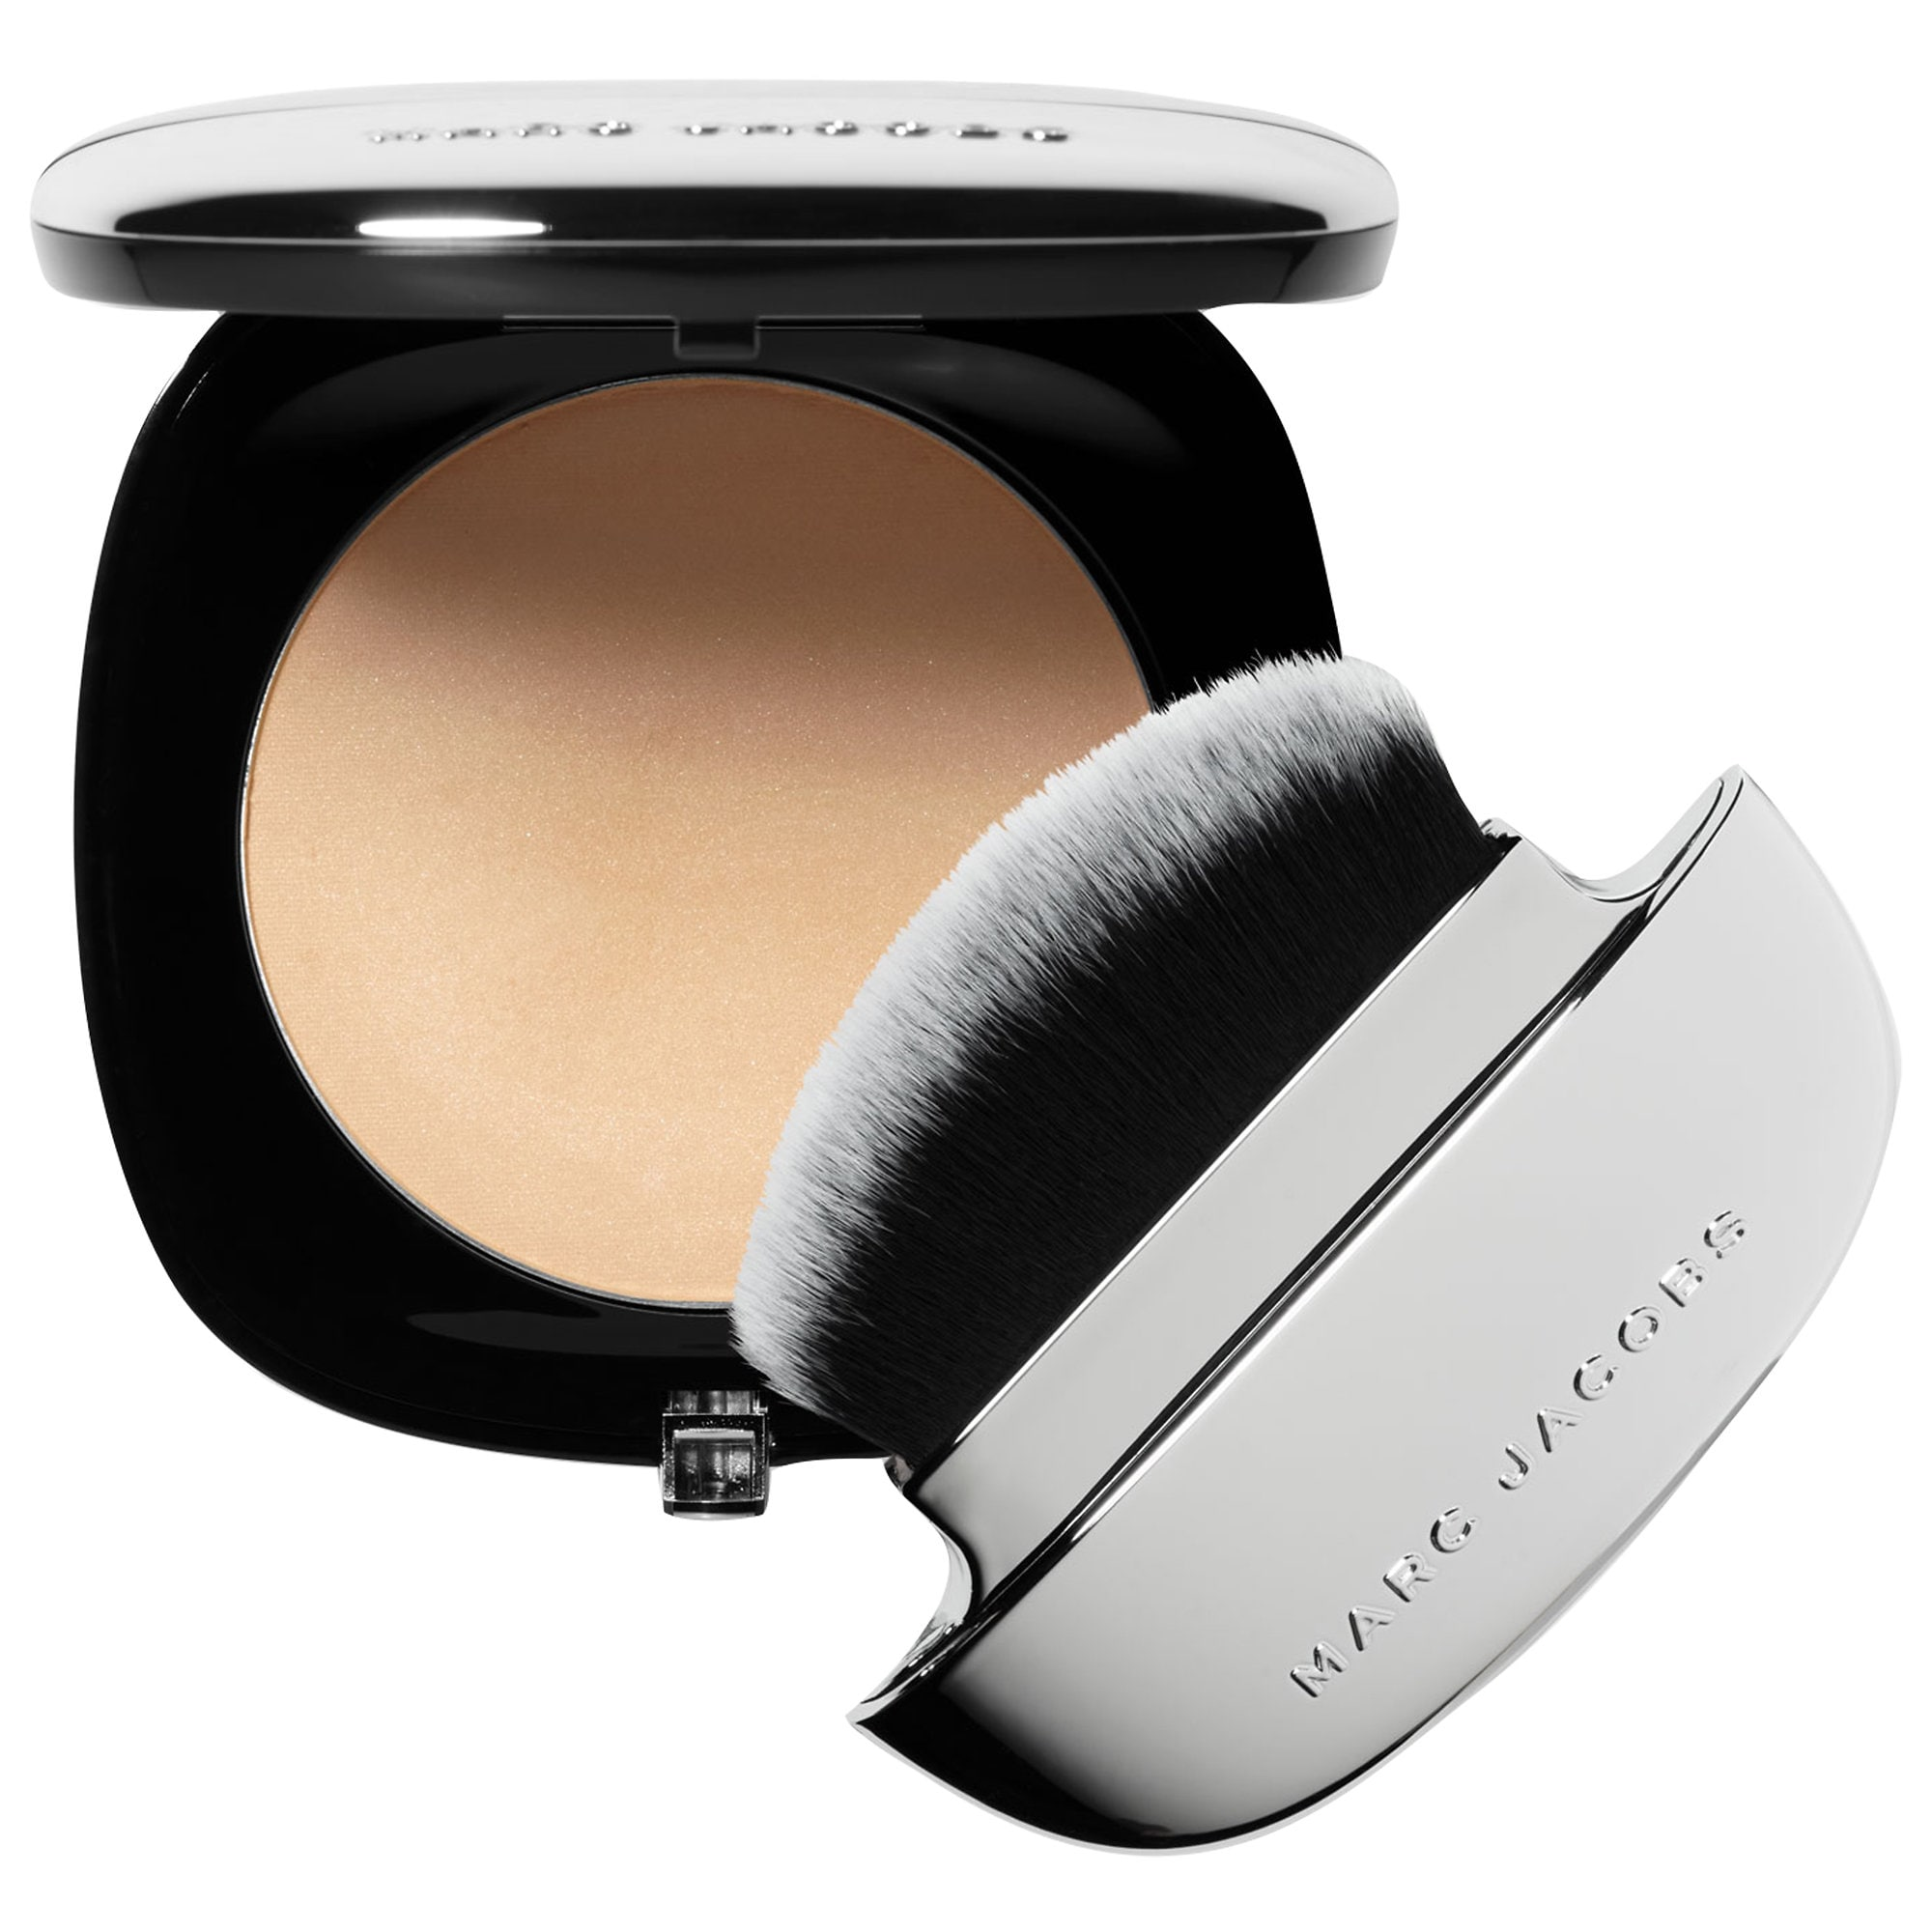 Marc Jacobs - Accomplice Instant Blurring Beauty Powder